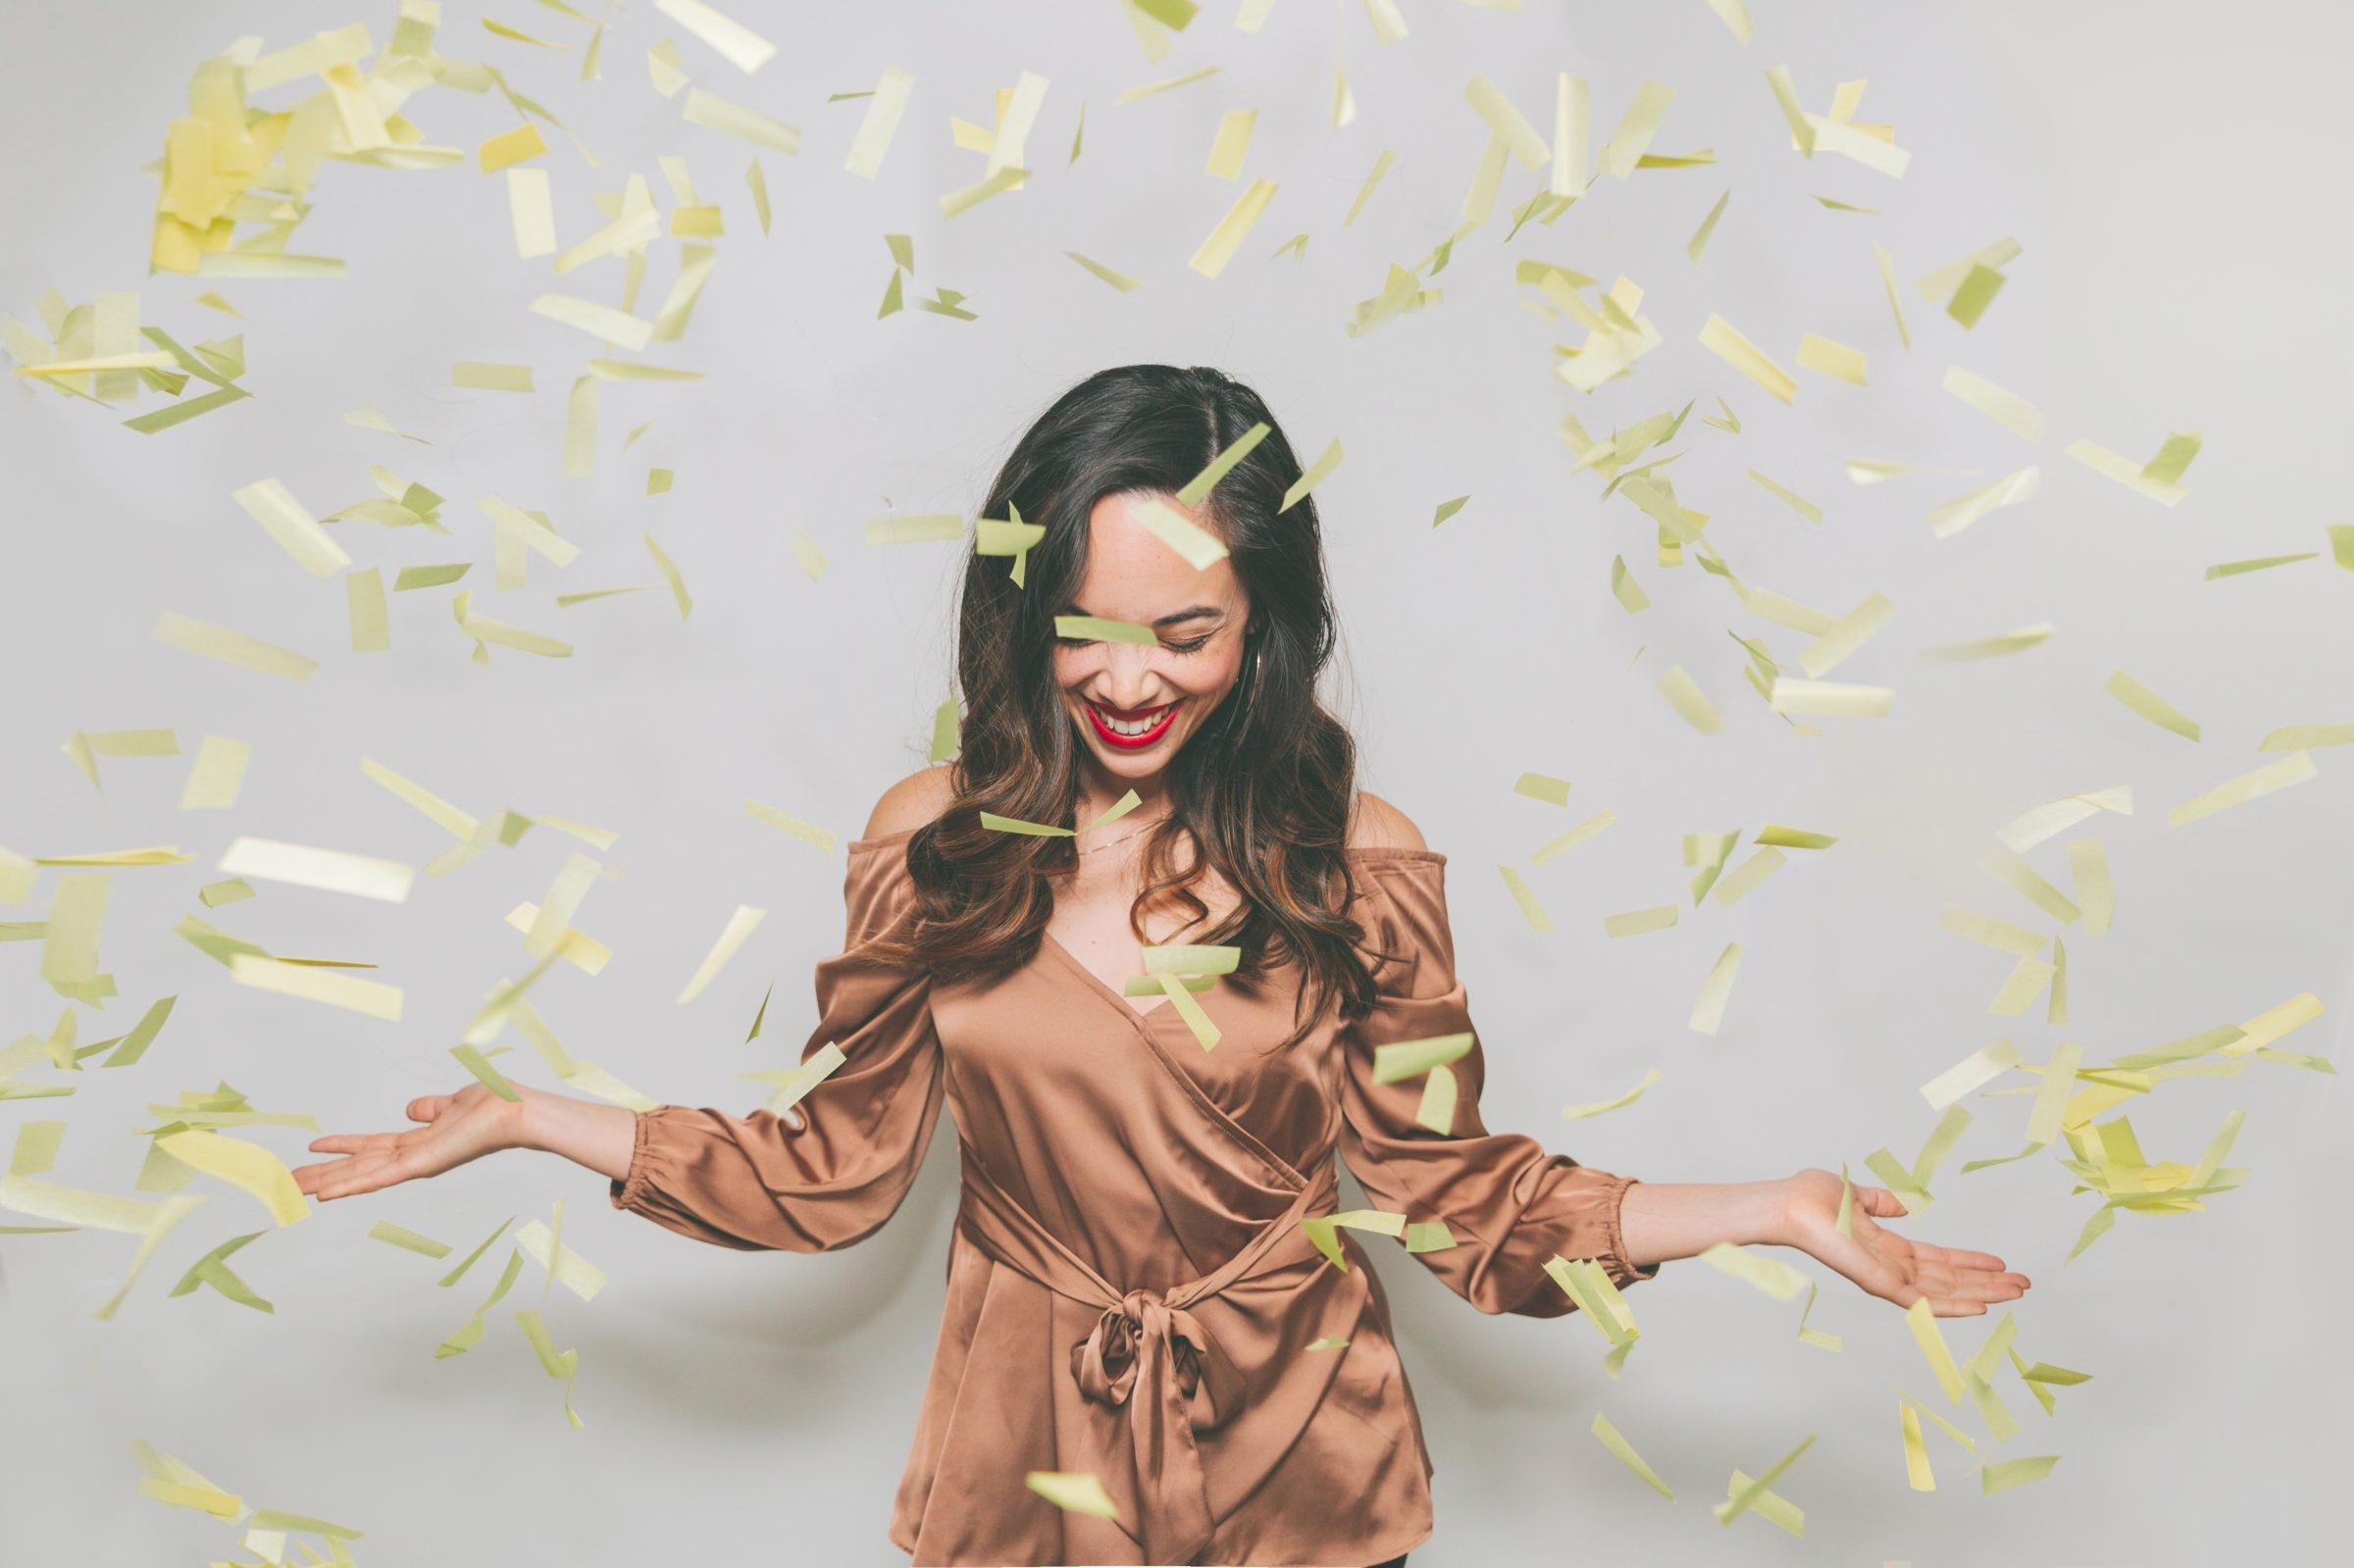 confetti falling on a woman dressed in gold NBWVCQ4